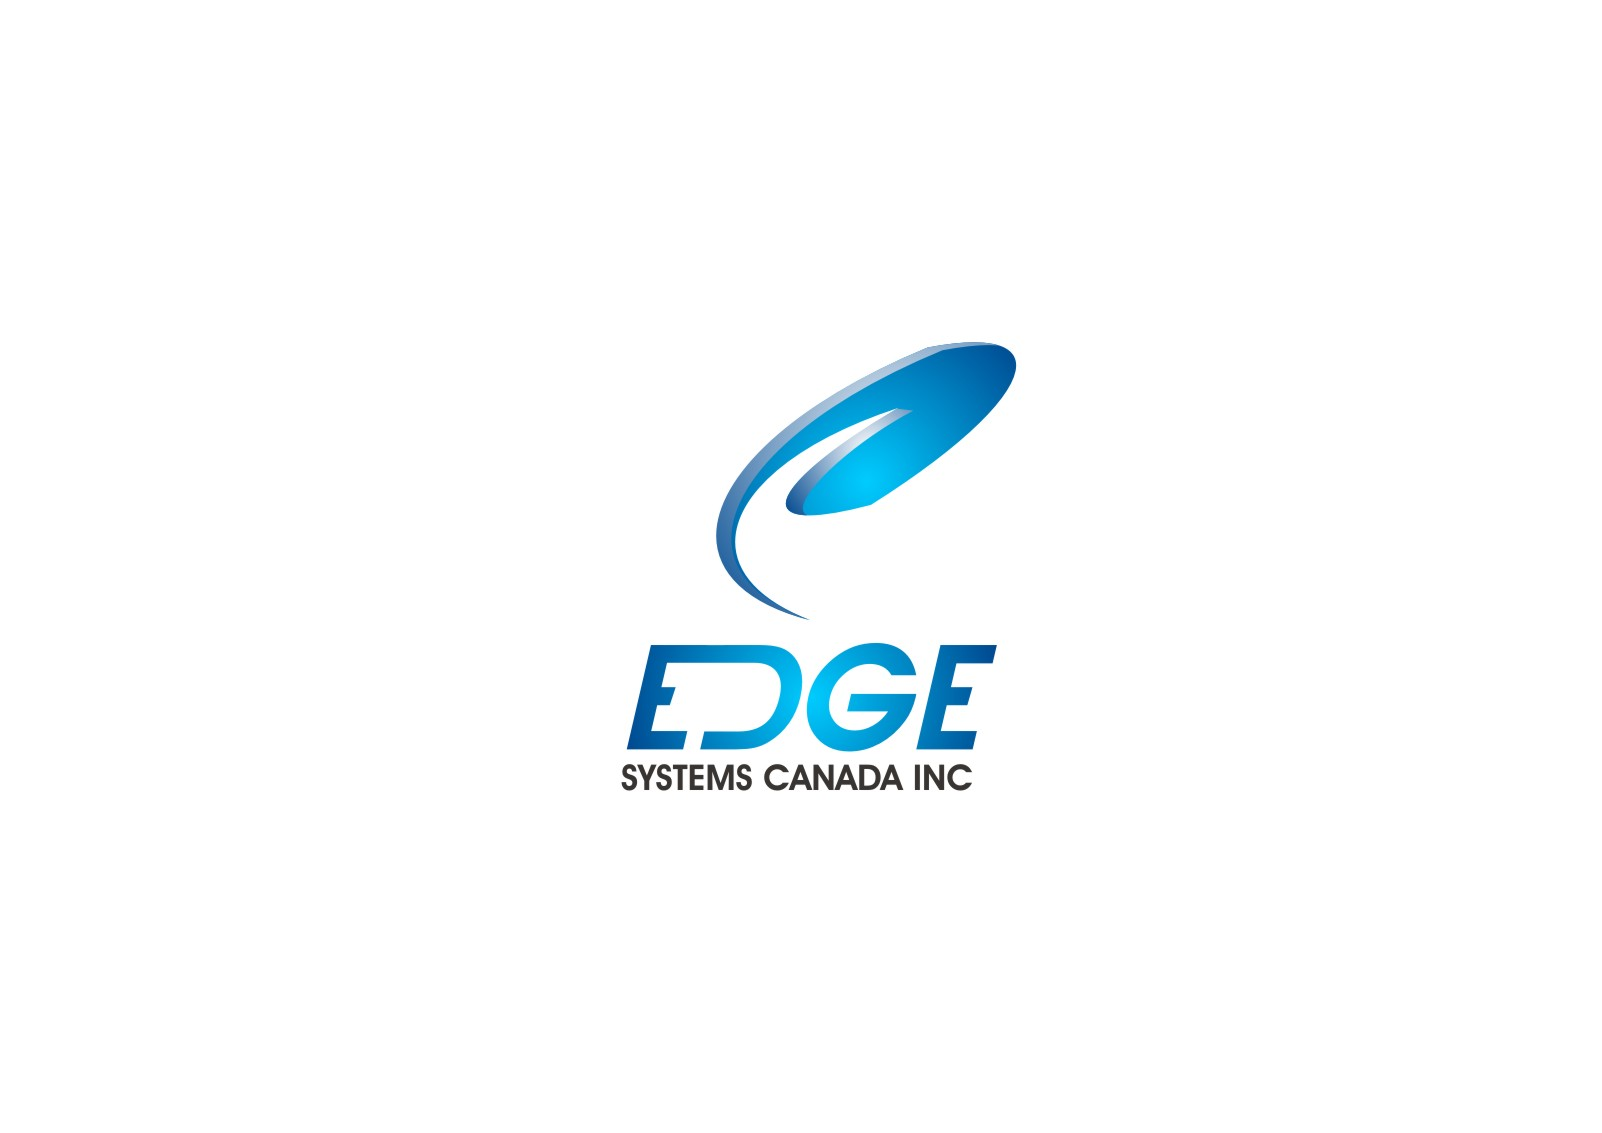 Logo Design by yanxsant - Entry No. 1 in the Logo Design Contest New Logo Design for Edge Systems Canada Inc.